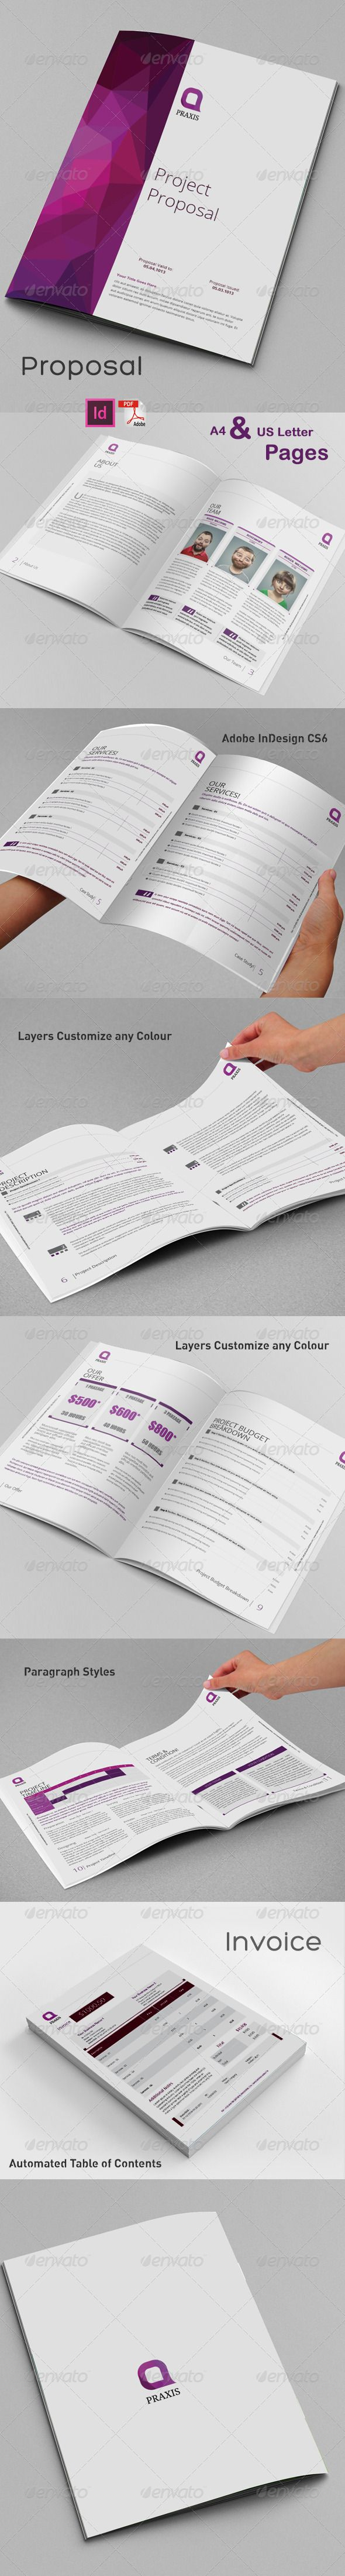 Proposal Template | Download: http://graphicriver.net/item/proposal-template/8540573?ref=ksioks